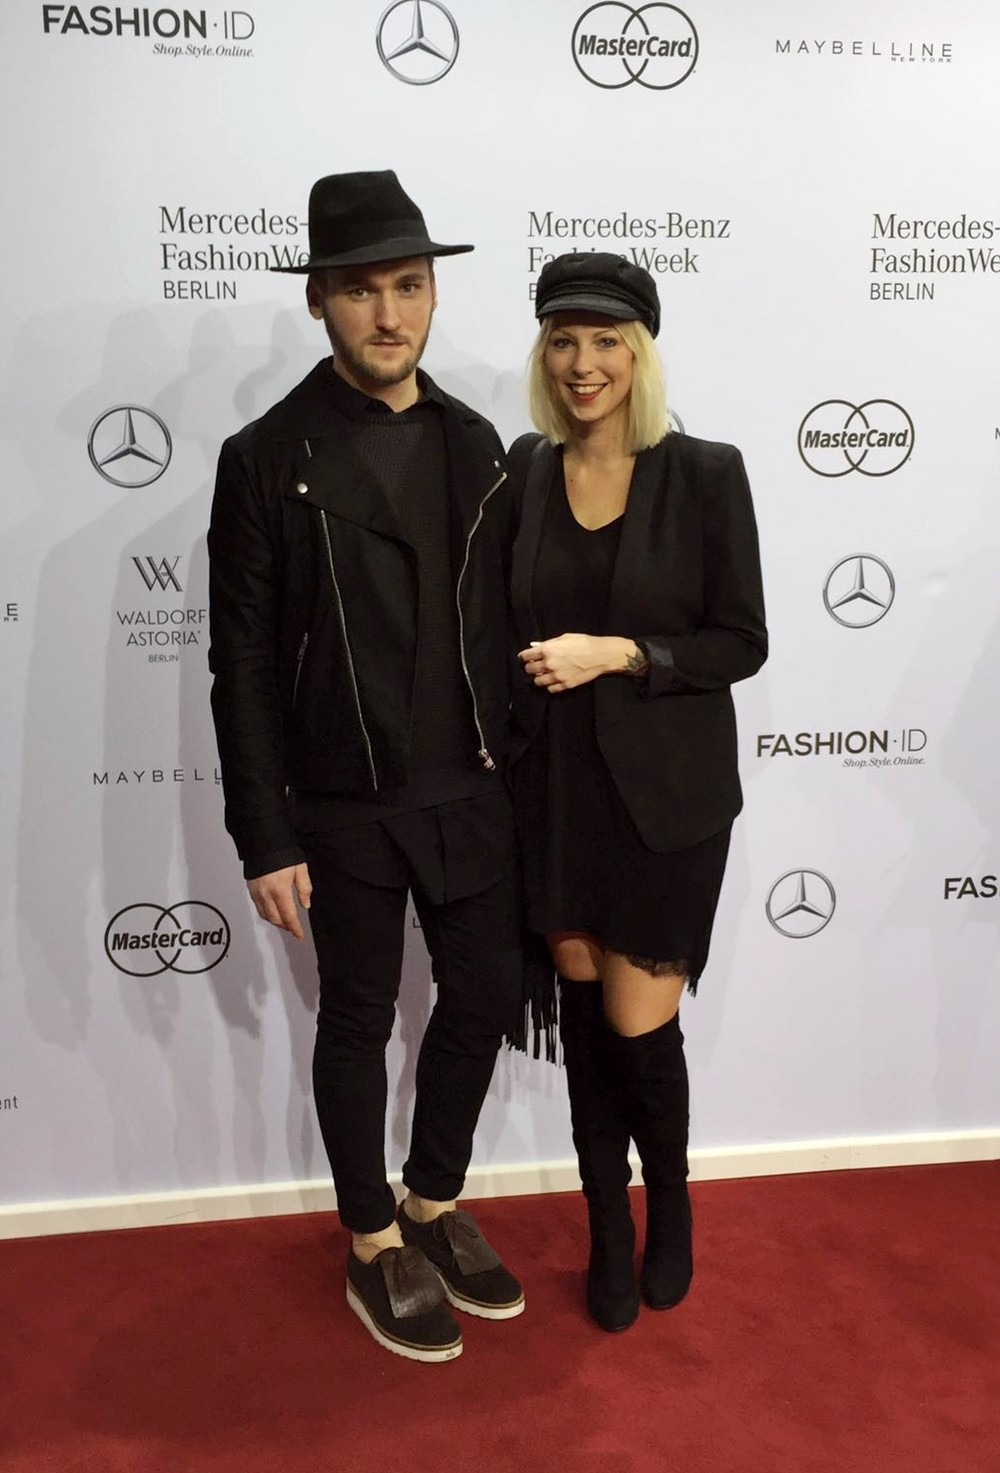 Mercedes Benz Fashion Week Berlin 2016 mit Blondedepartment